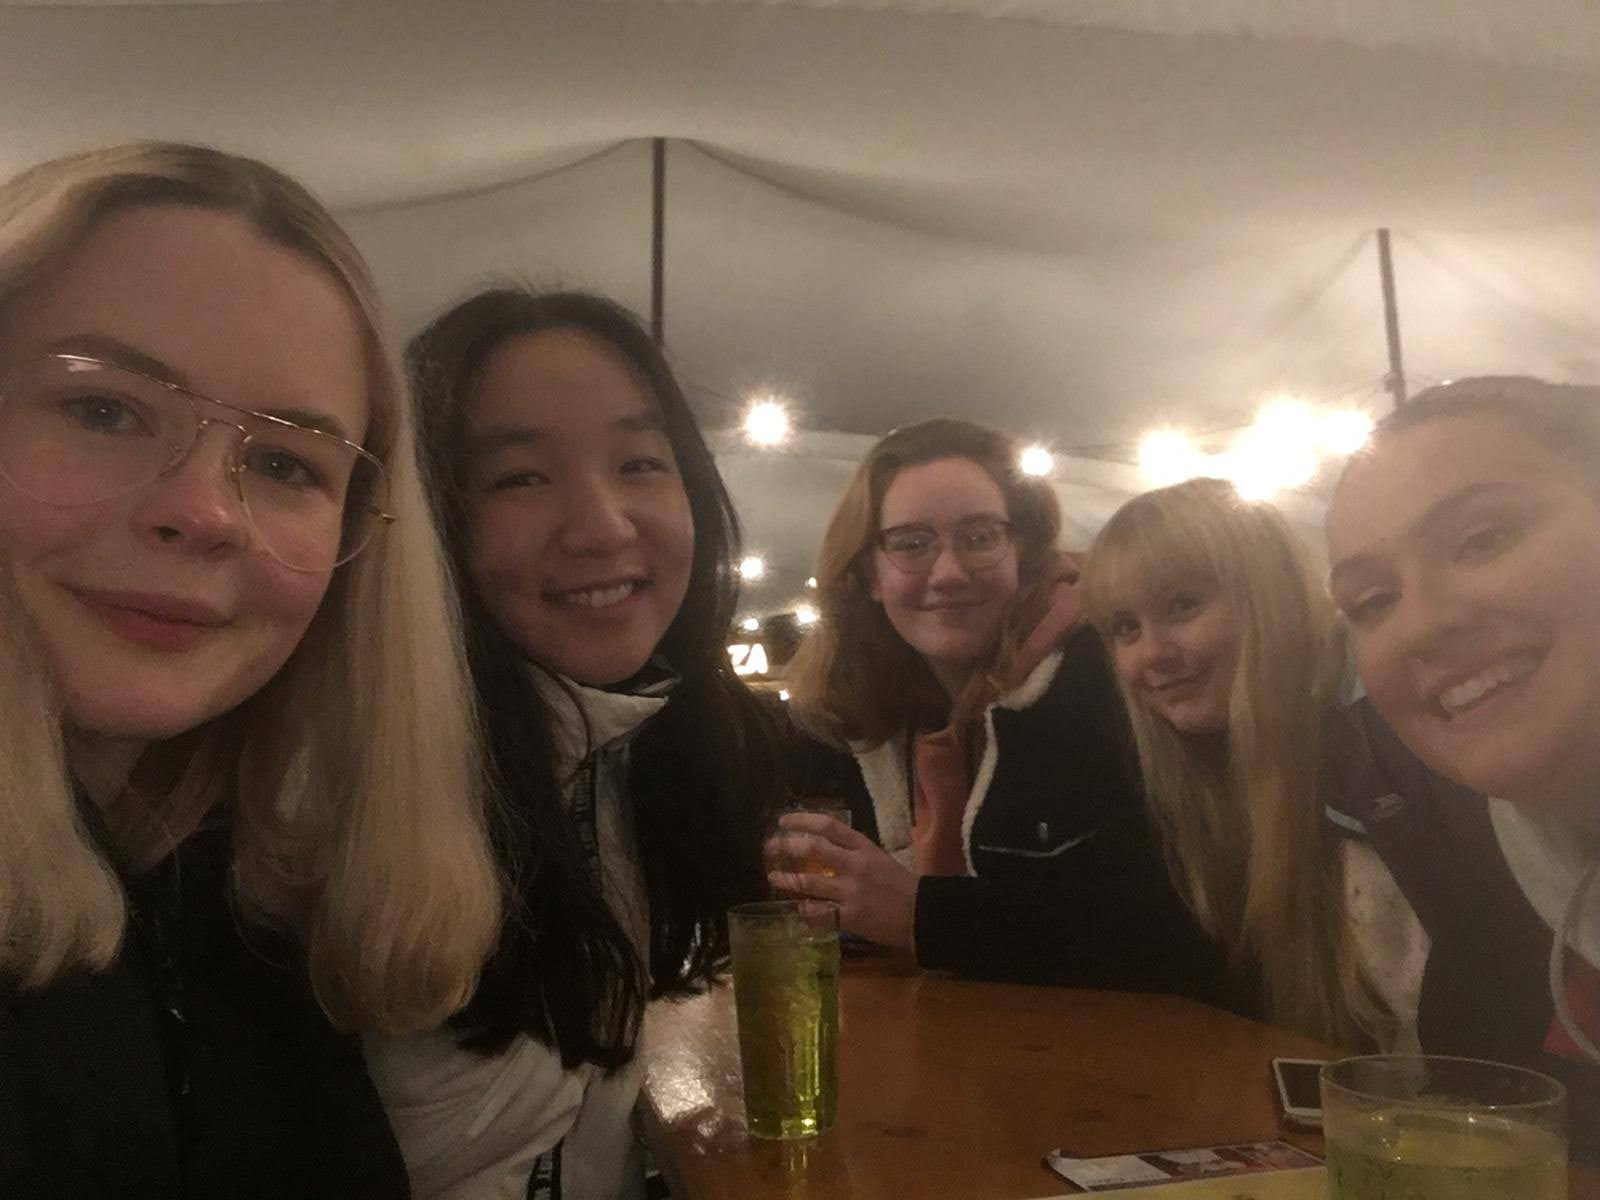 University of York students socialising in a Tipi bar on campus